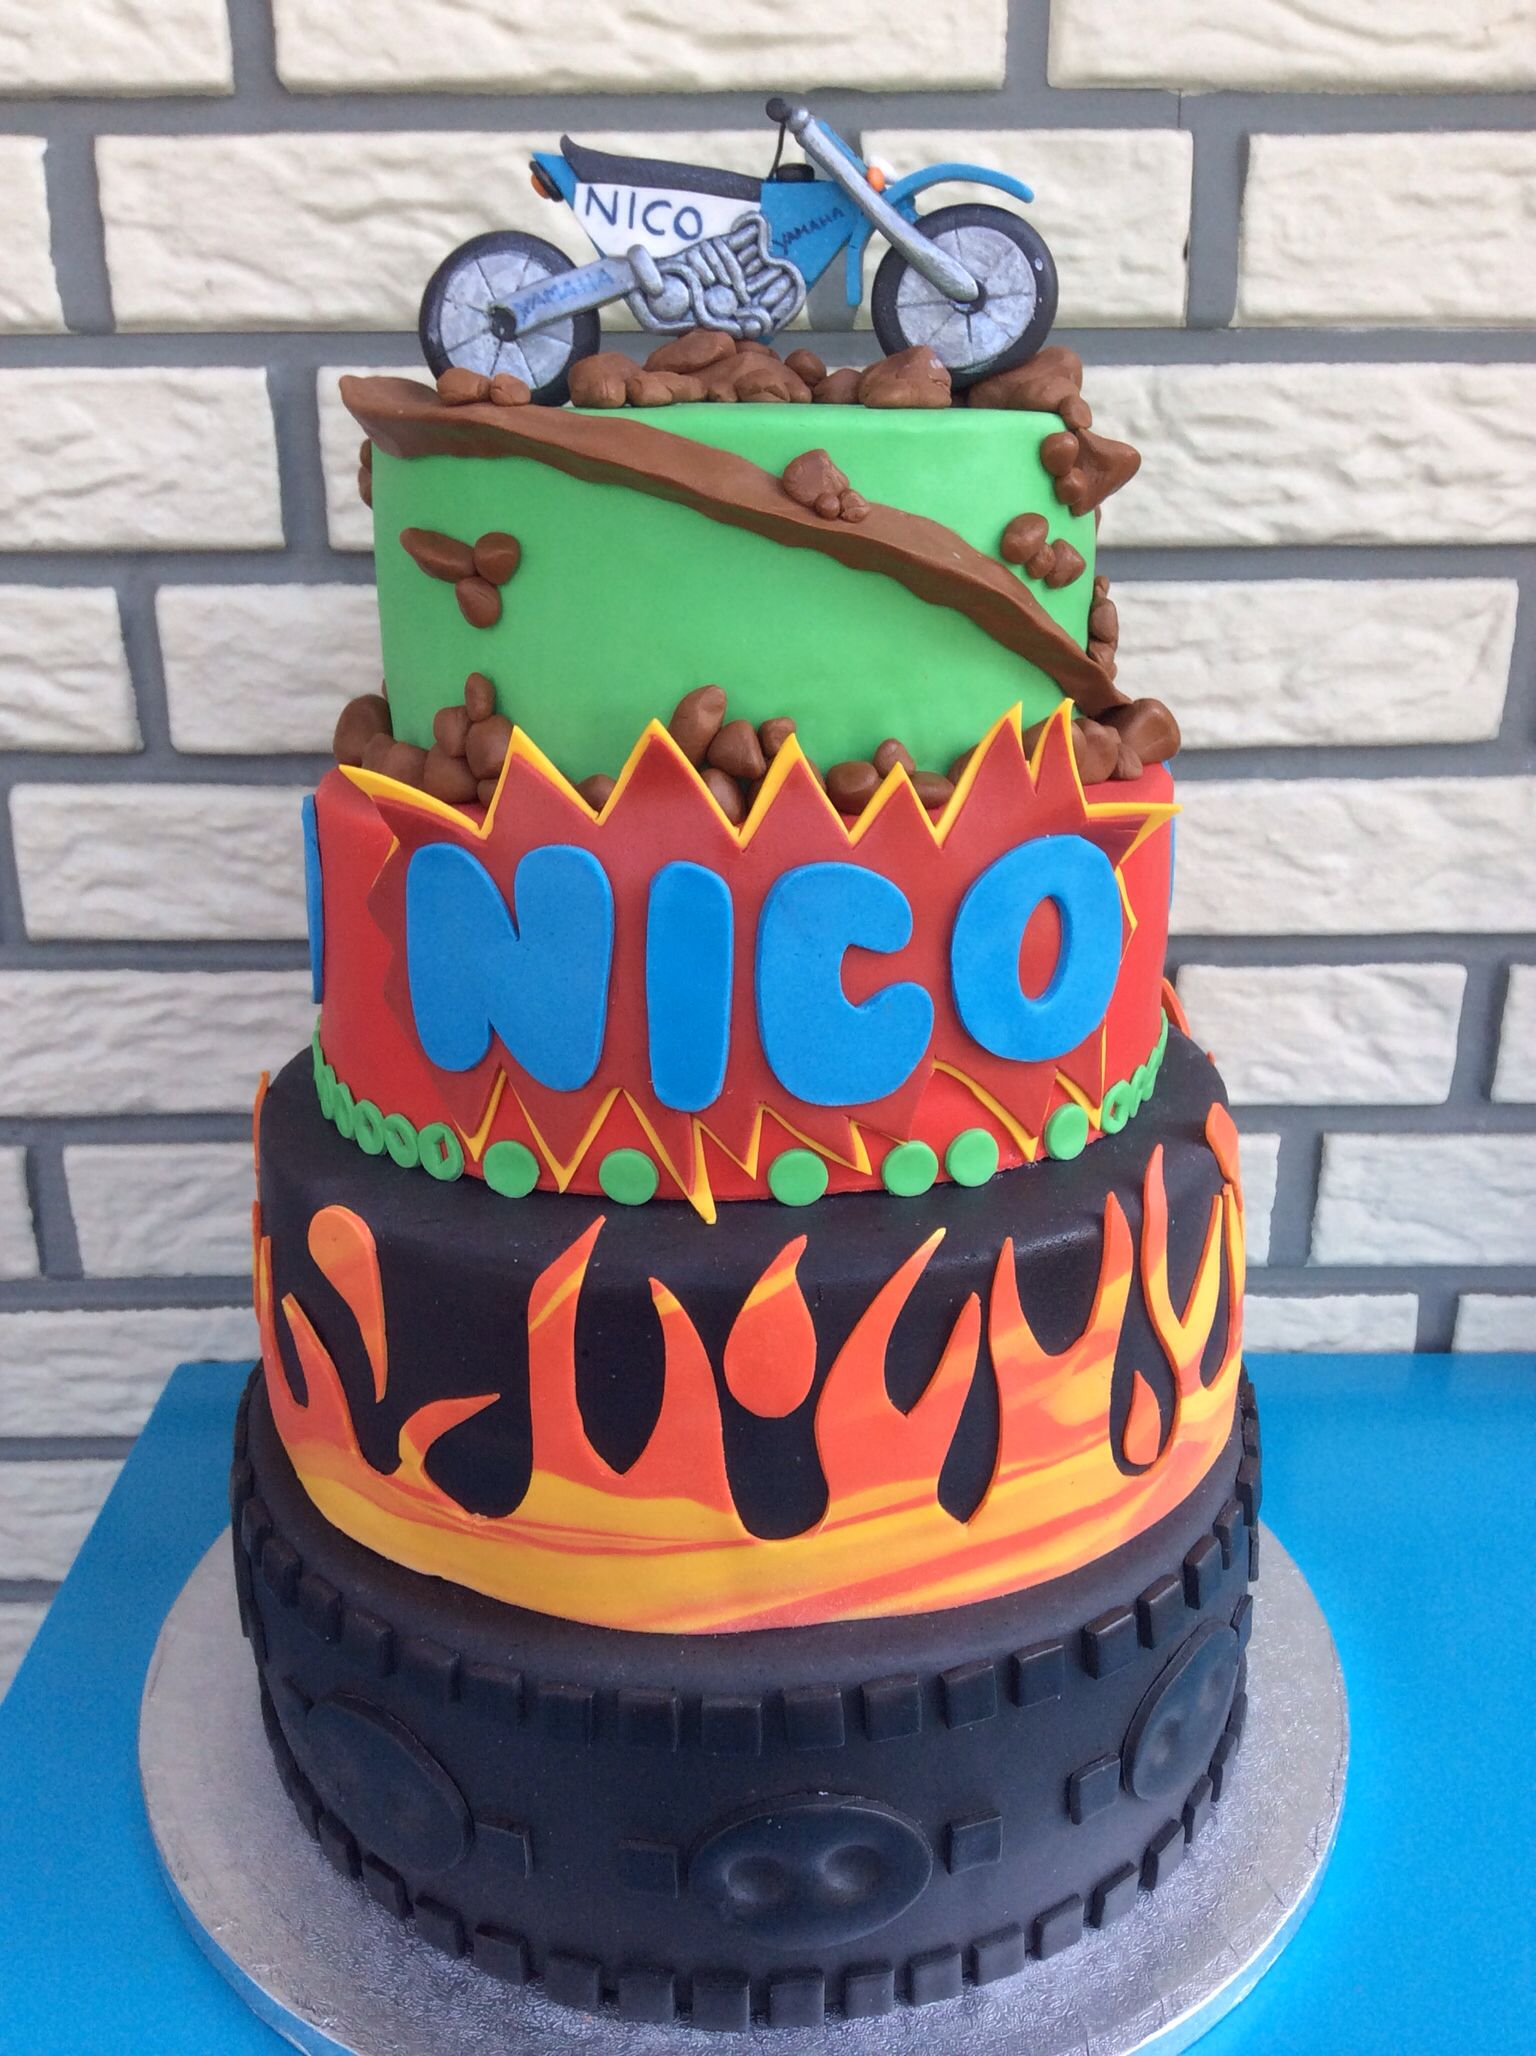 Yamaha cartoon cake with flames For a 60 Year old kid